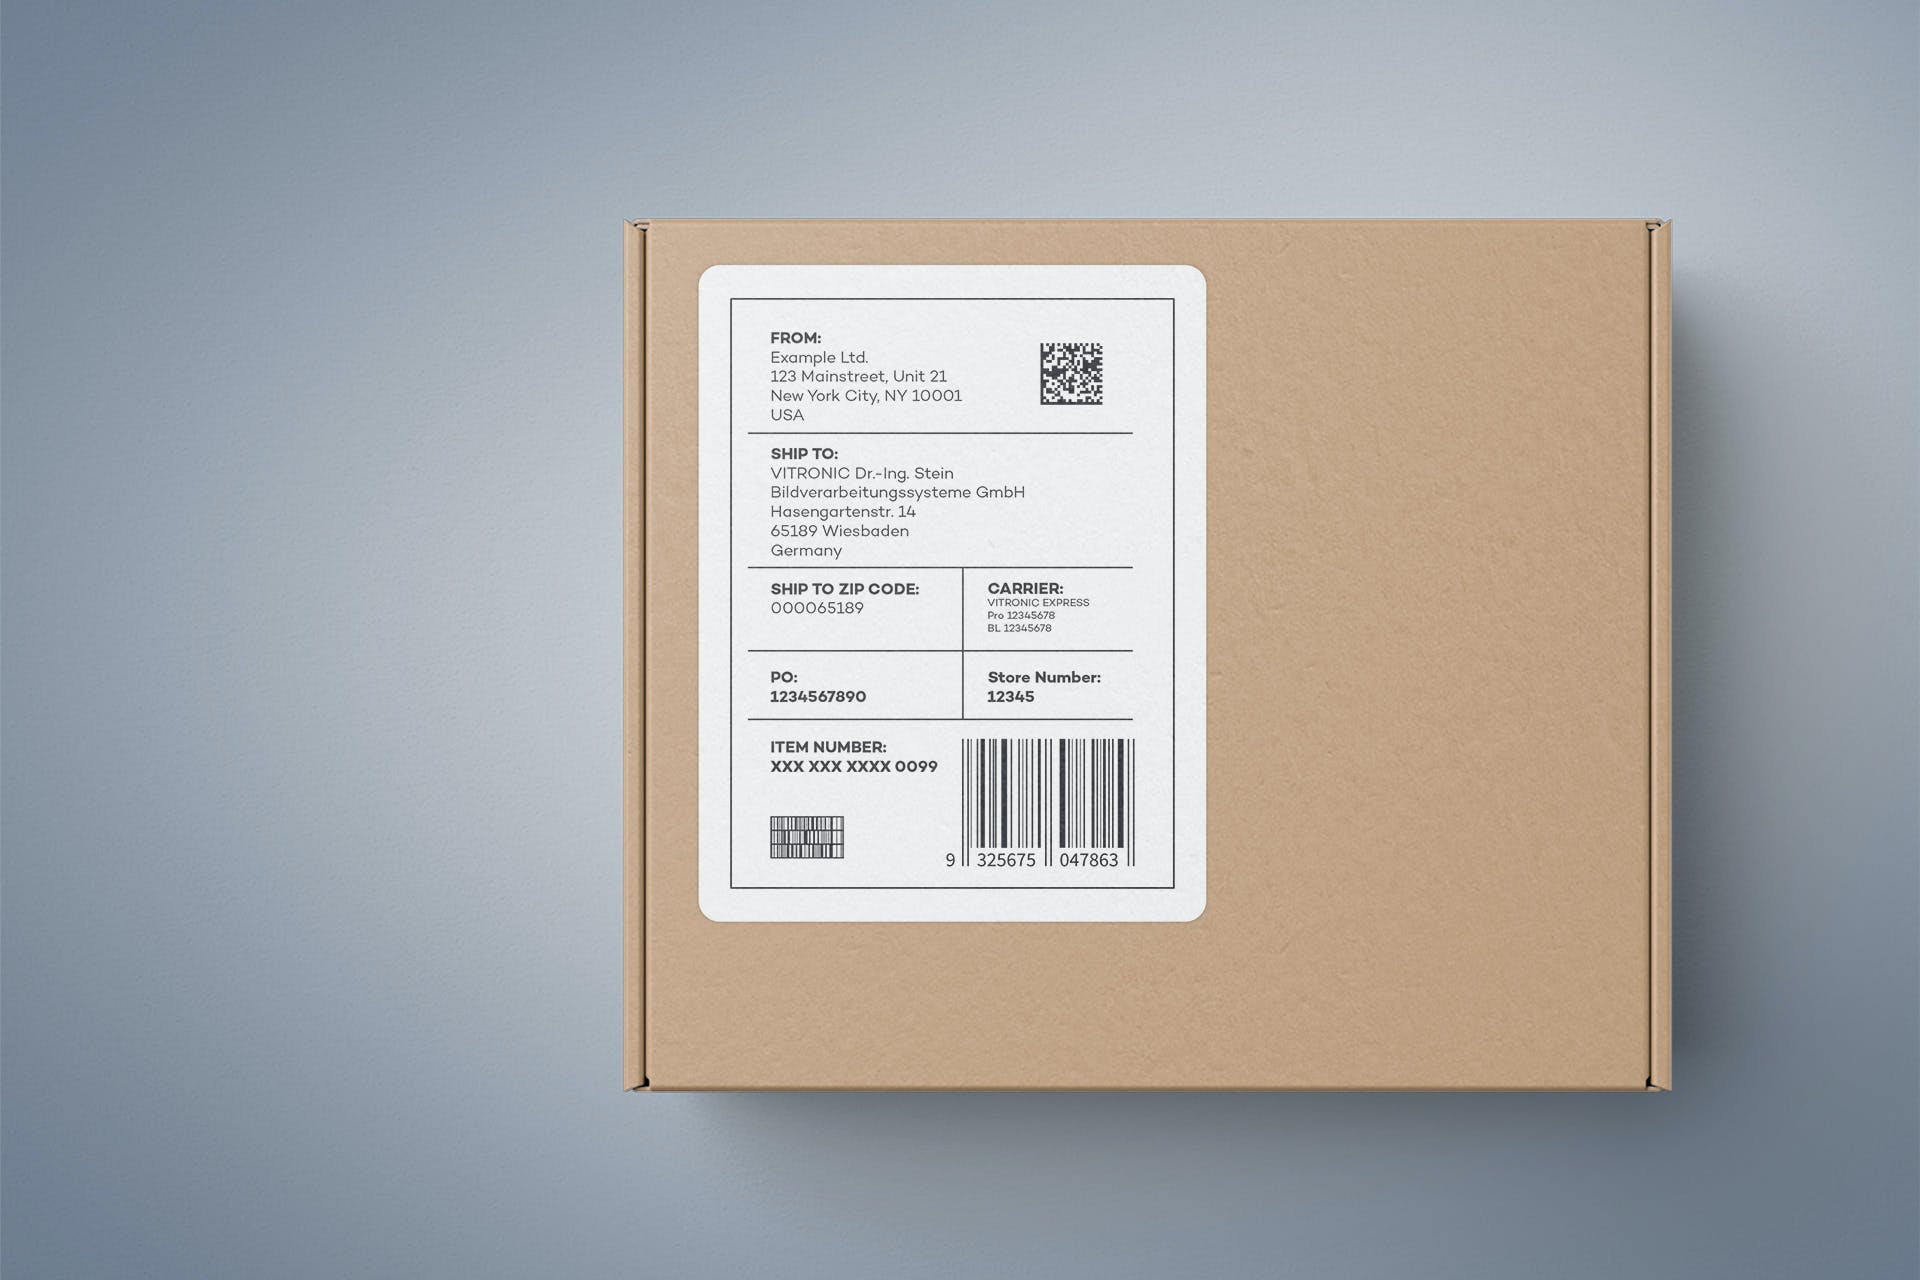 An address label with codes and plain text on a package